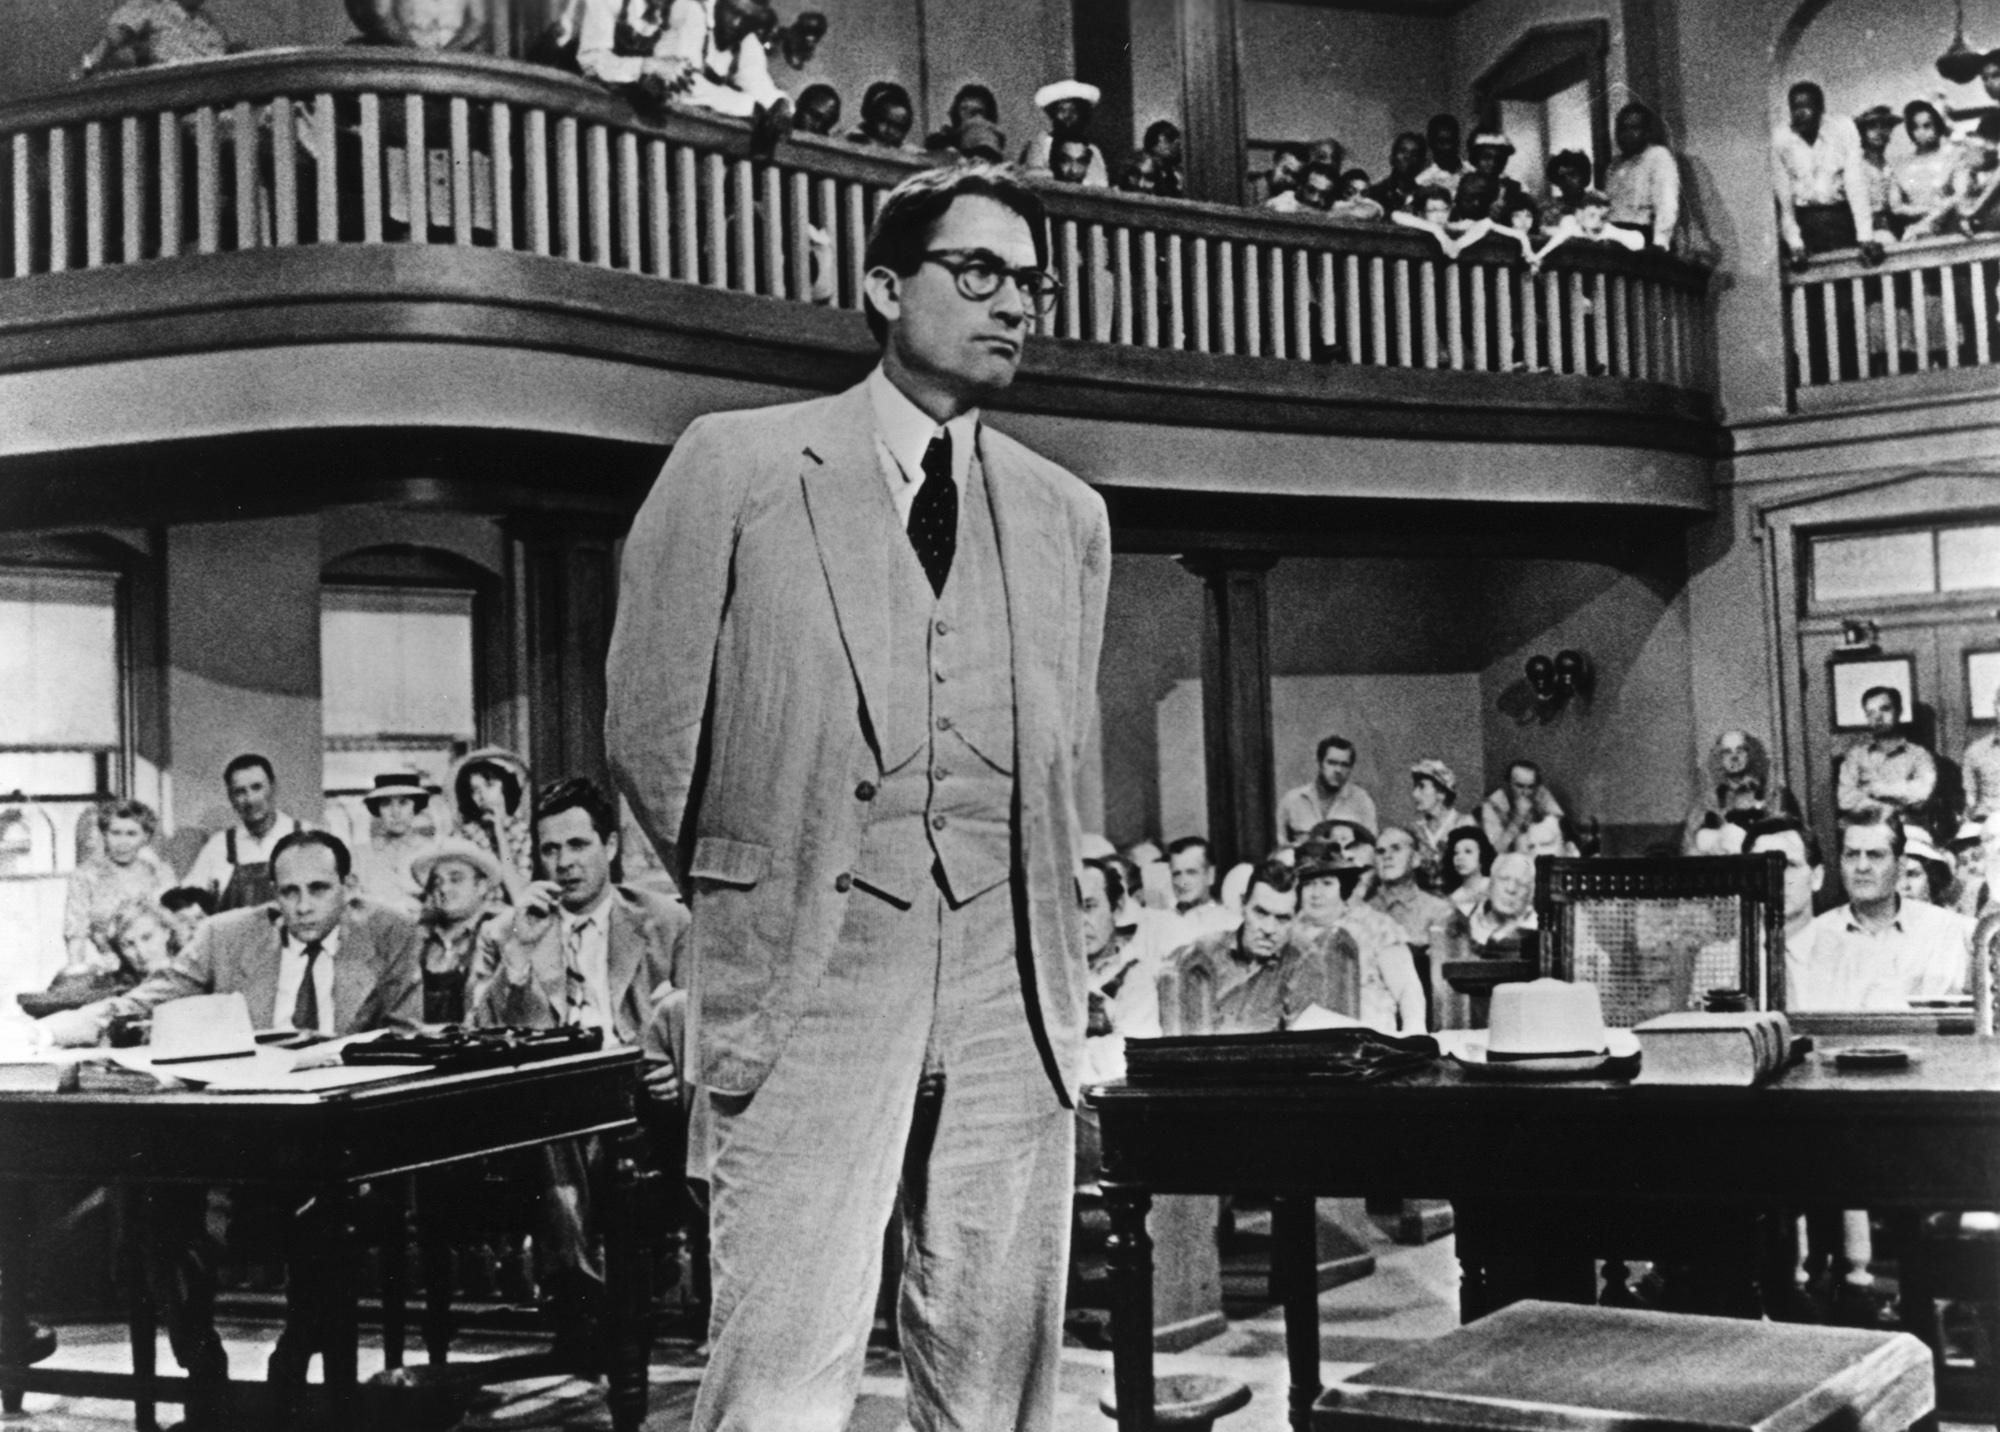 What is an example of suspense created in part 1 of To Kill a Mockingbird?